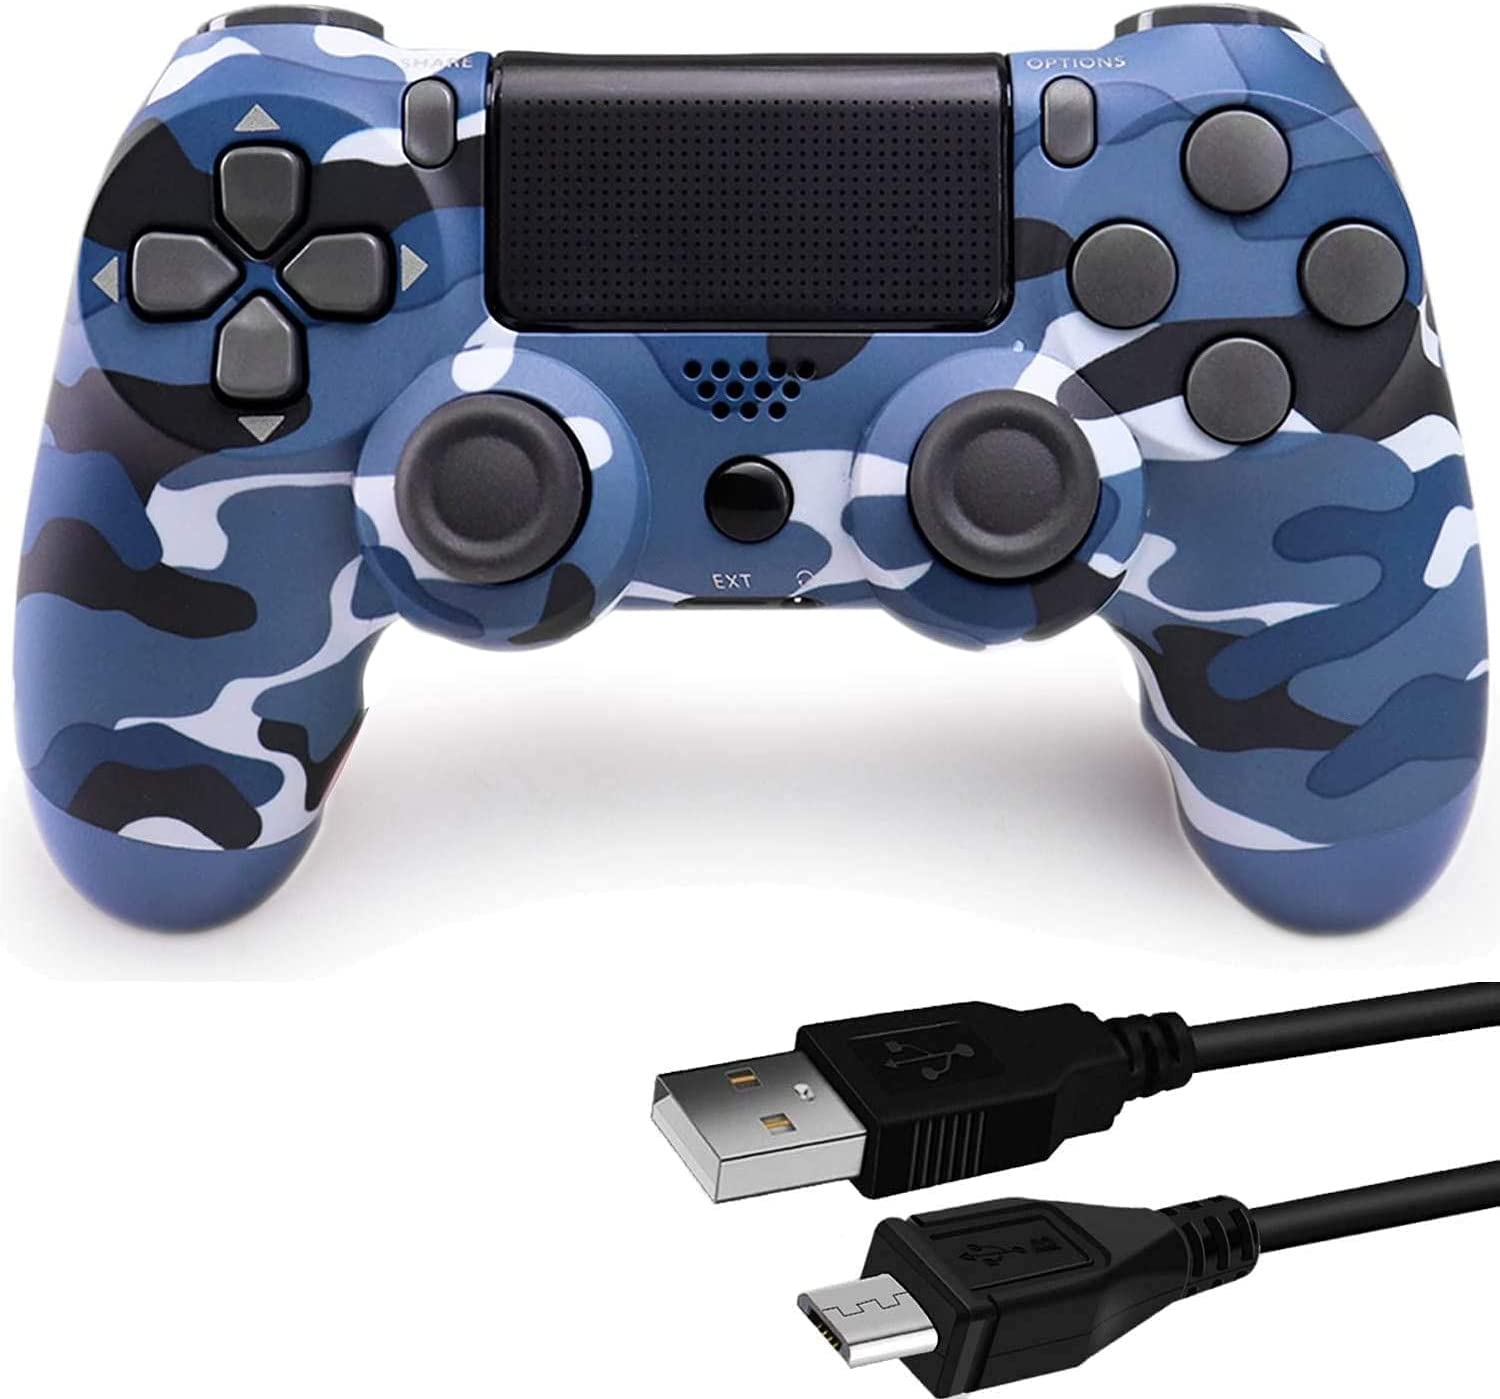 Game Controller for PS4, Wireless Remote for Play Station 4 with Dual Vibration Game Joystick(Blue Camouflage, NOT-OEM)